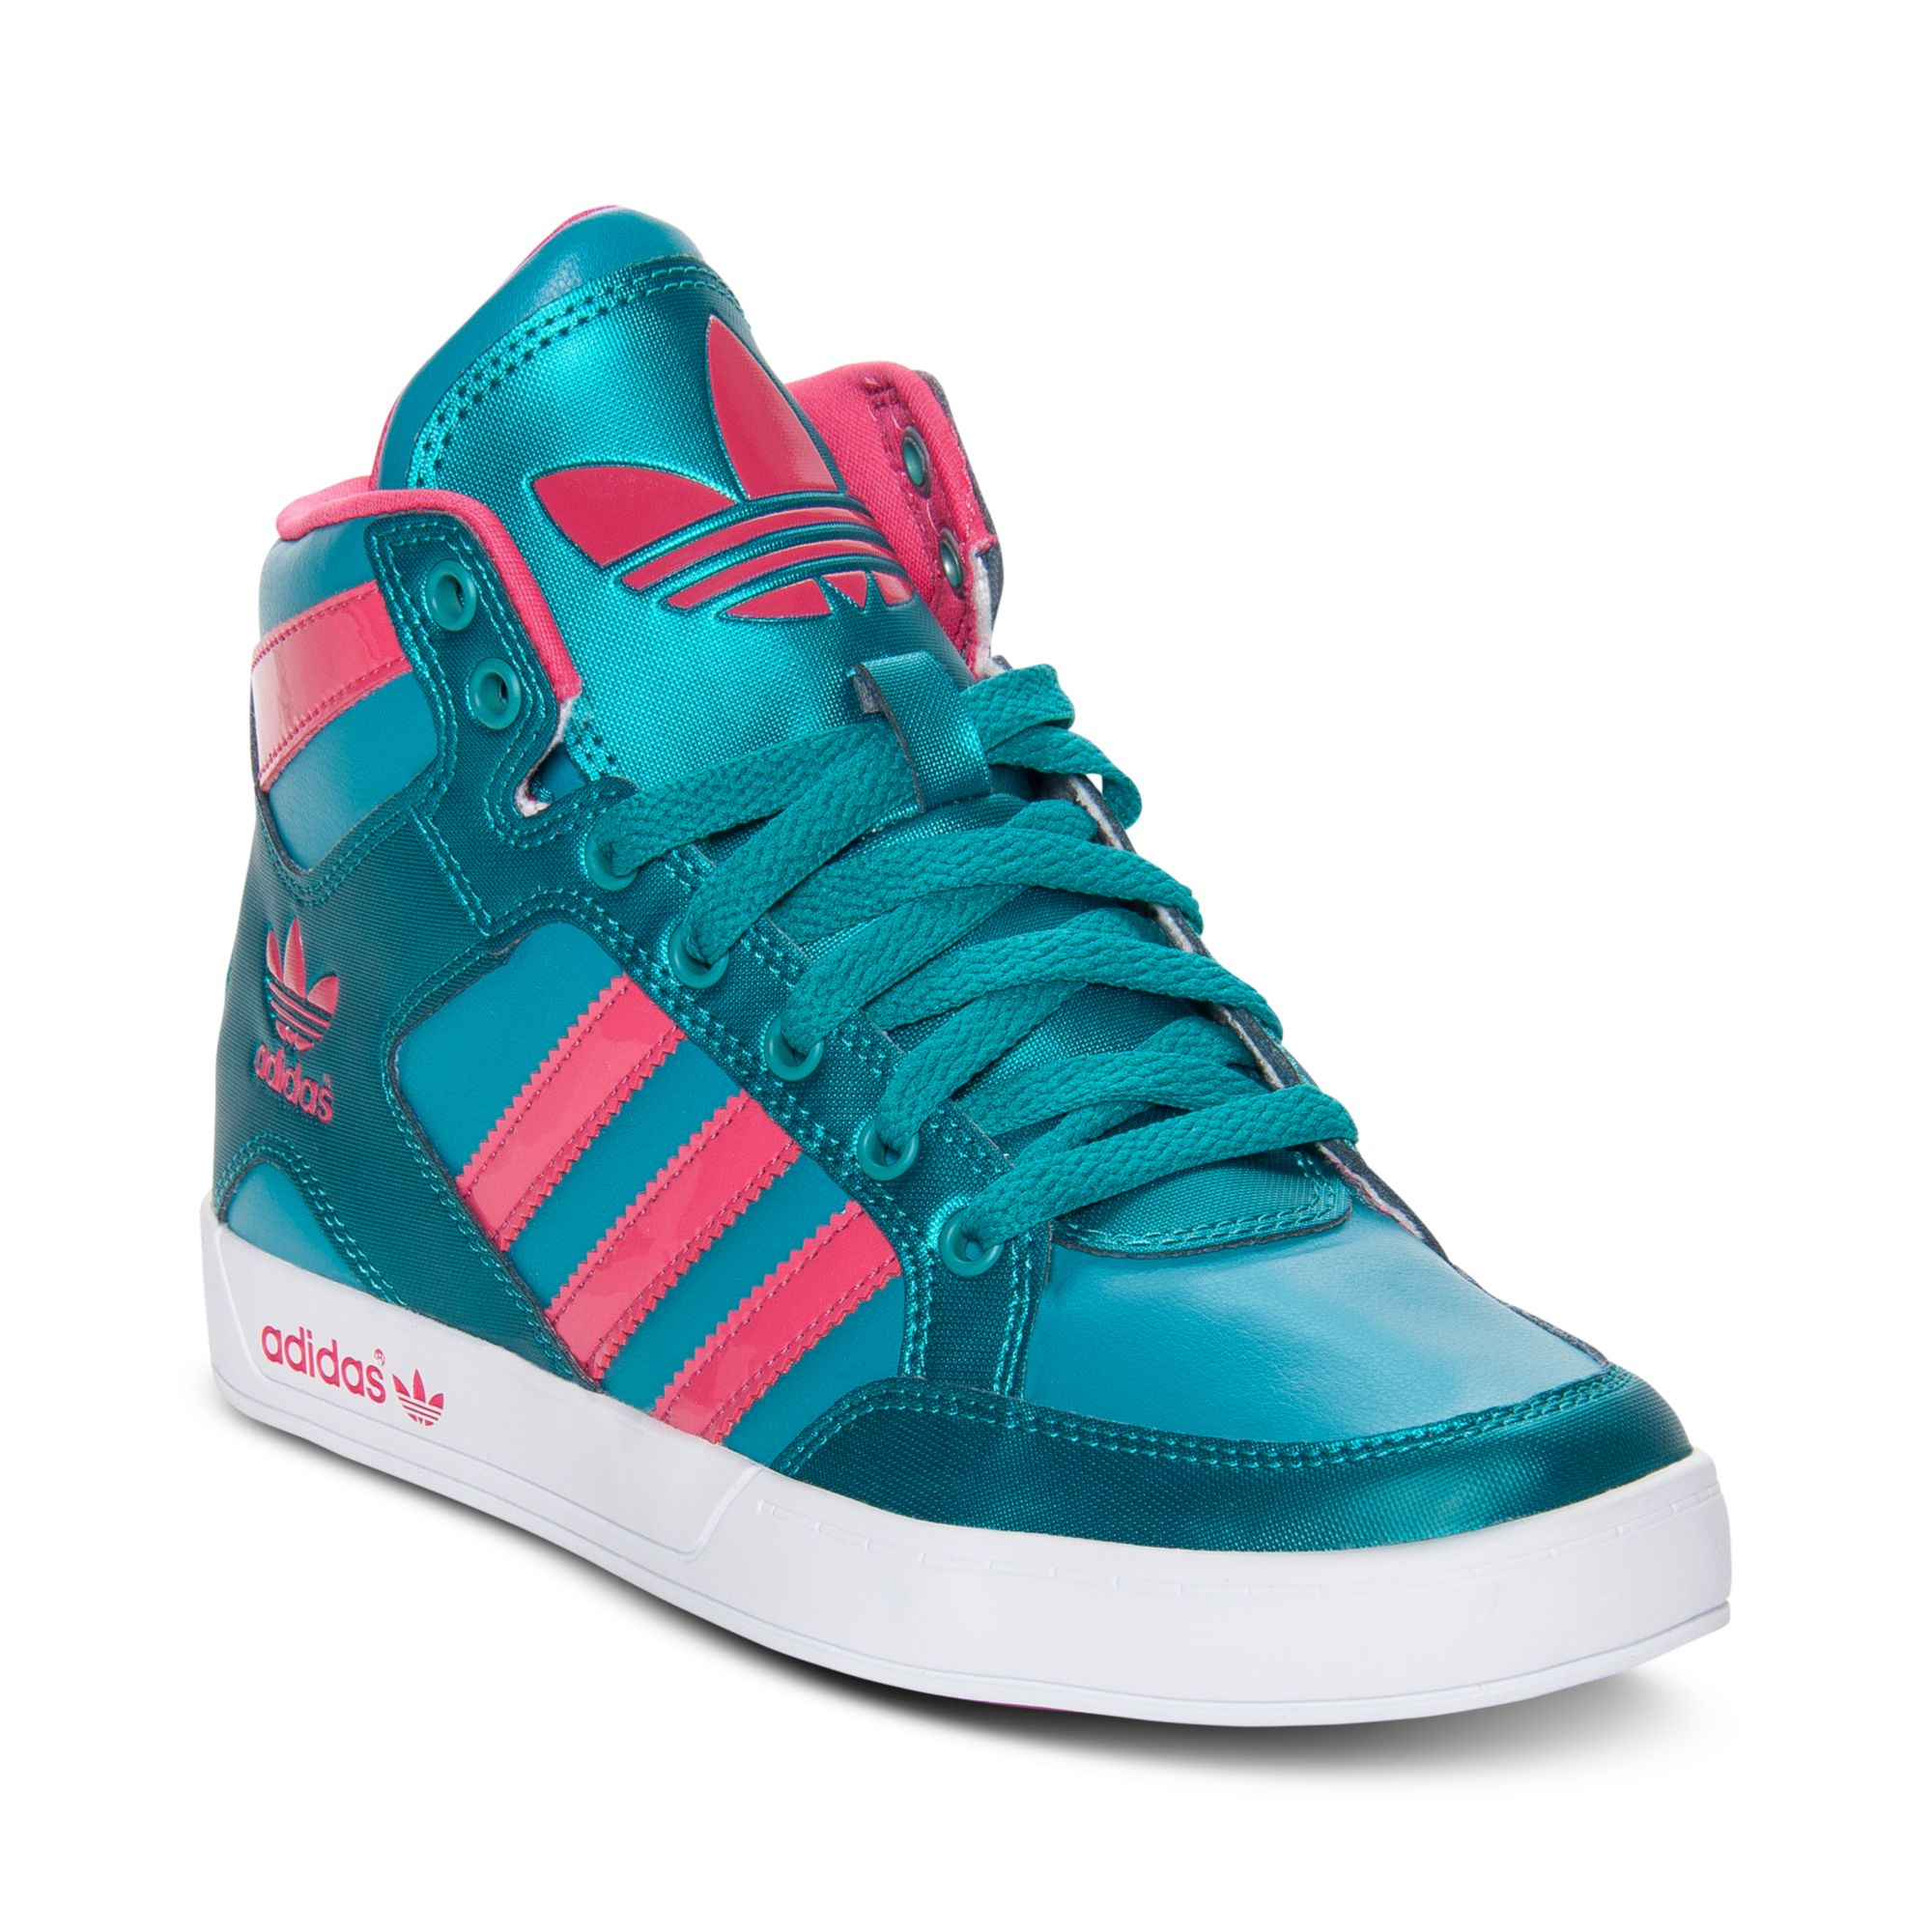 adidas Hardcourt High Top Casual Sneakers in Green - Lyst